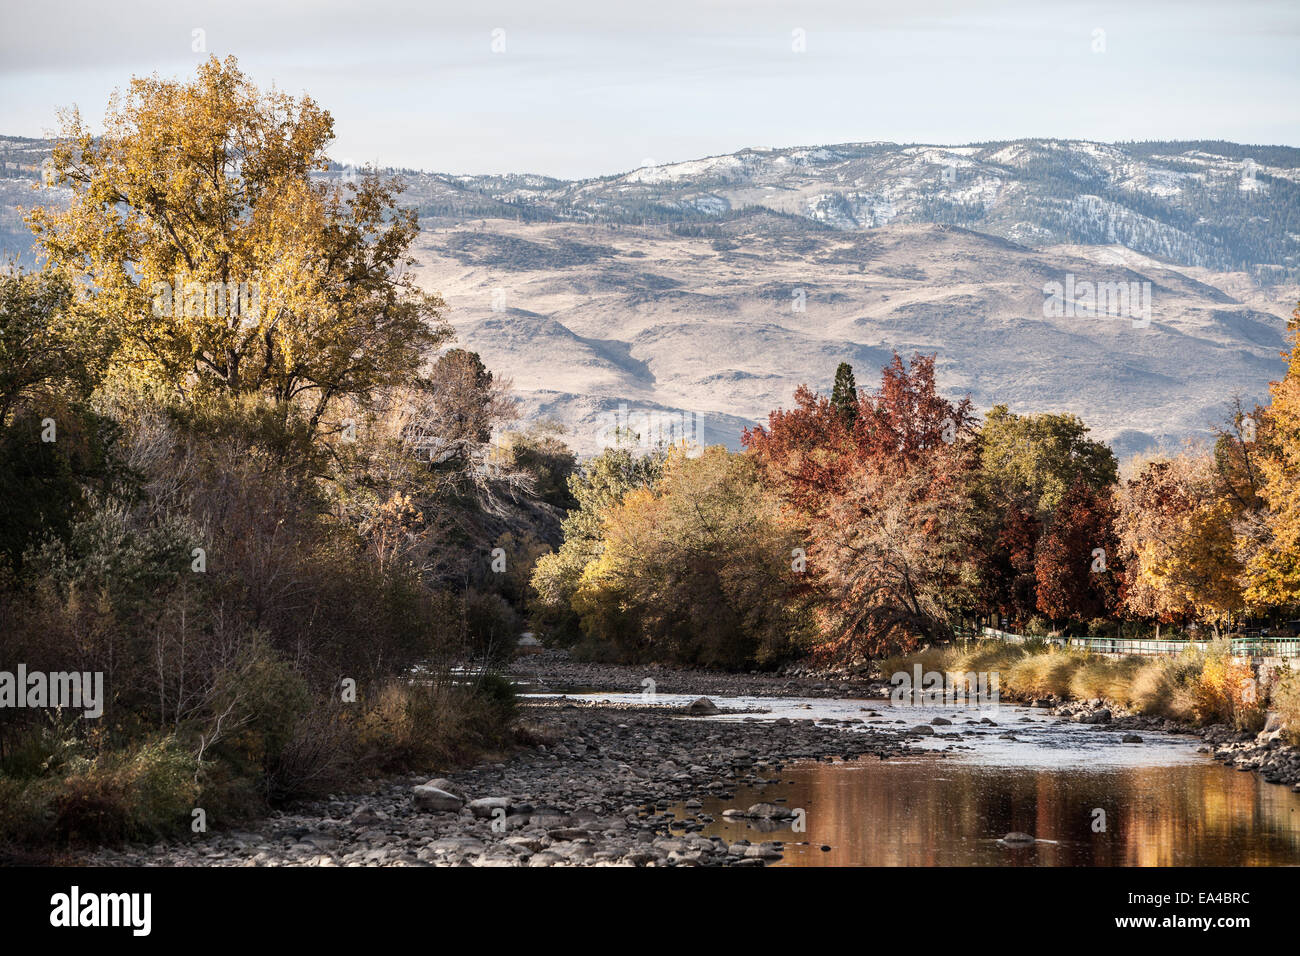 A view of the Truckee River running through the city of Reno, NV. - Stock Image